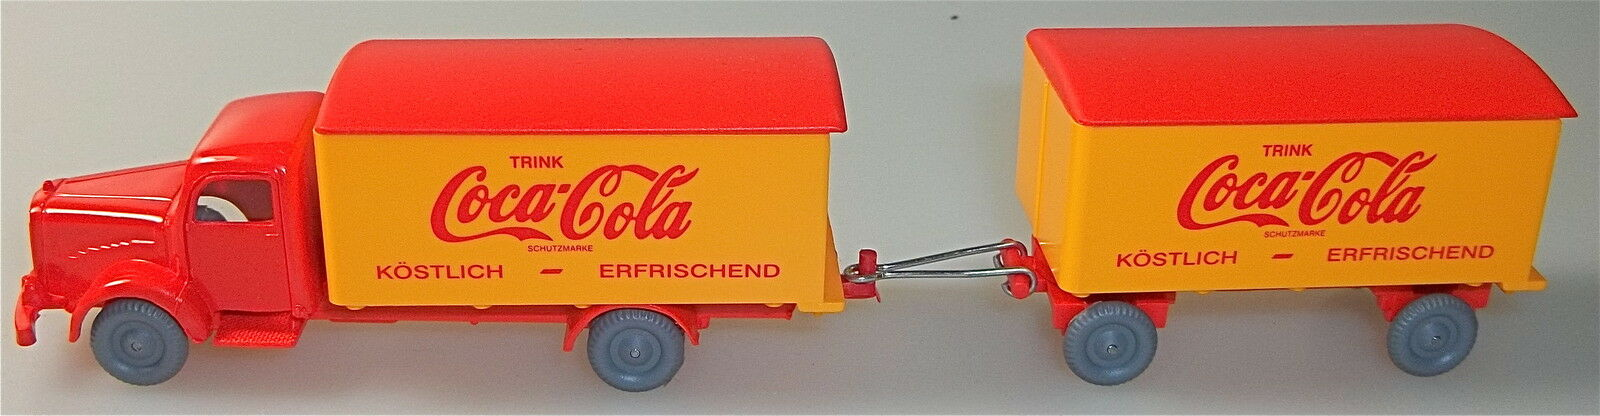 Coca Cola Mercedes 5000 Hängerzug red orange Imu H0 1 87 Å